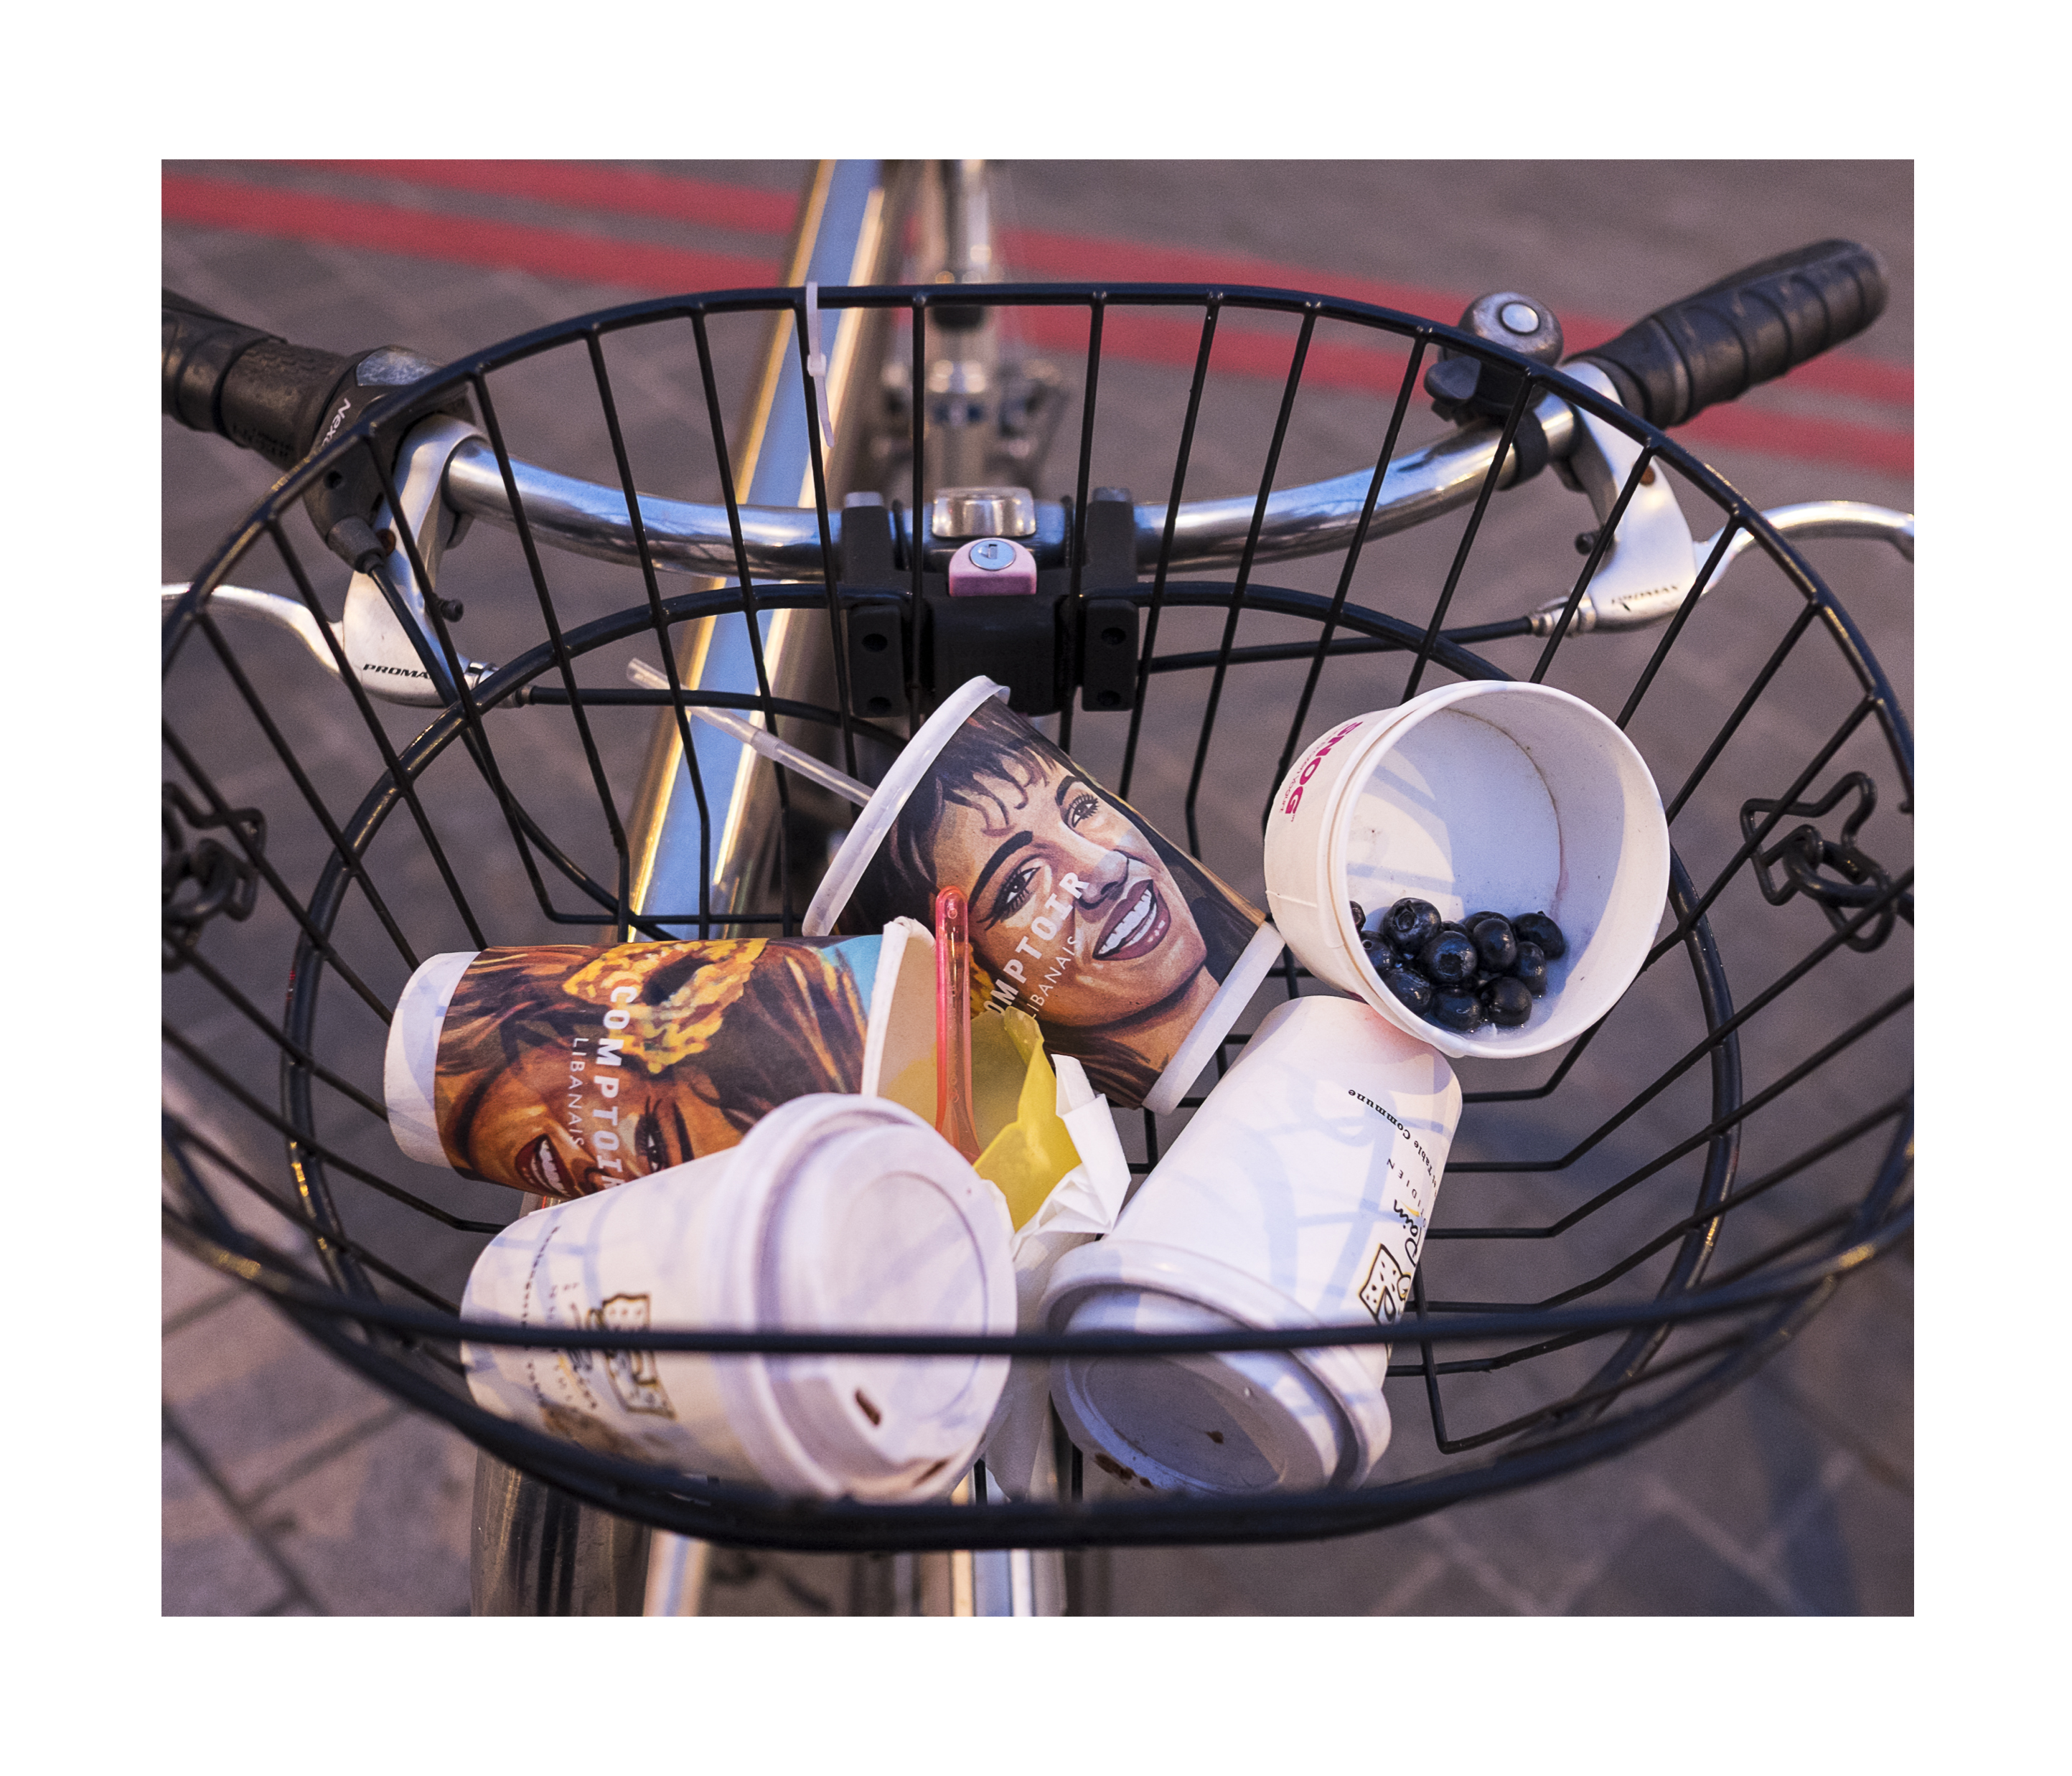 A Love afair with Bicycle Page 26.jpg